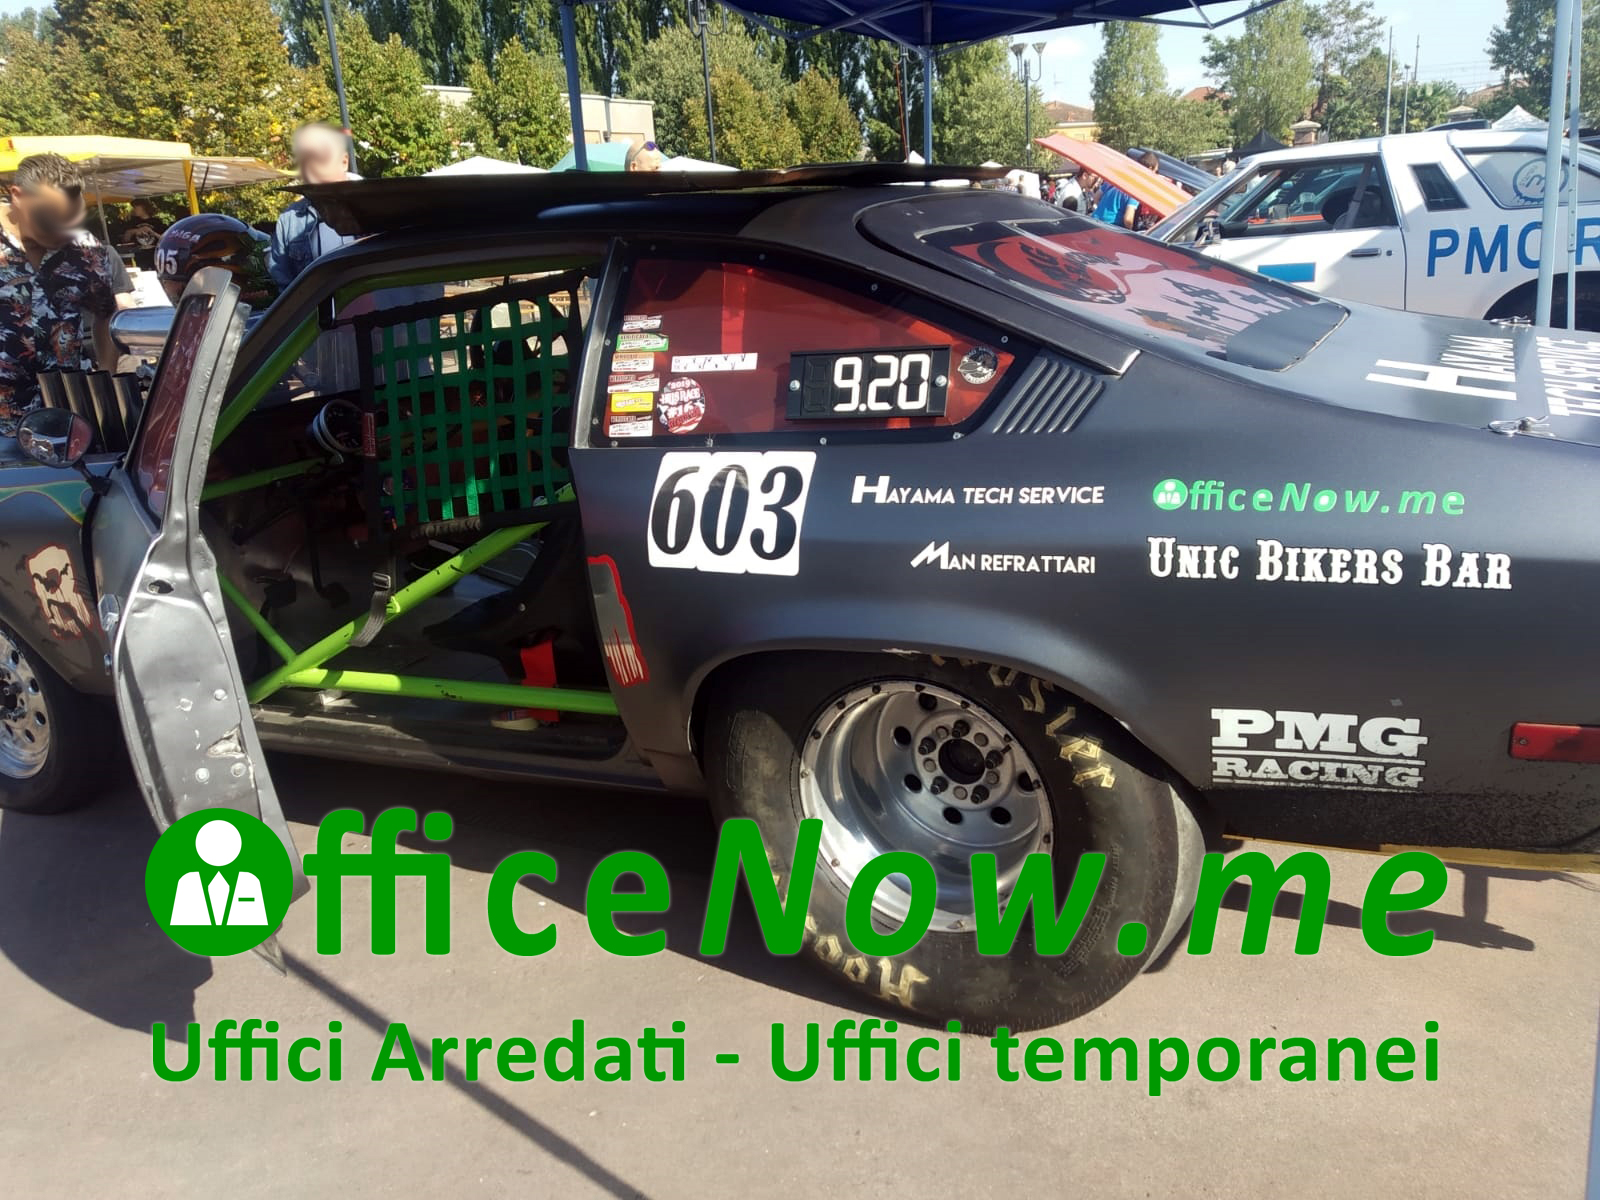 OfficeNow, business center, passioni, cairate, malpensa, uffici arredati, uffici temporanei, PMG racing, Babayaga, sponsor, interni